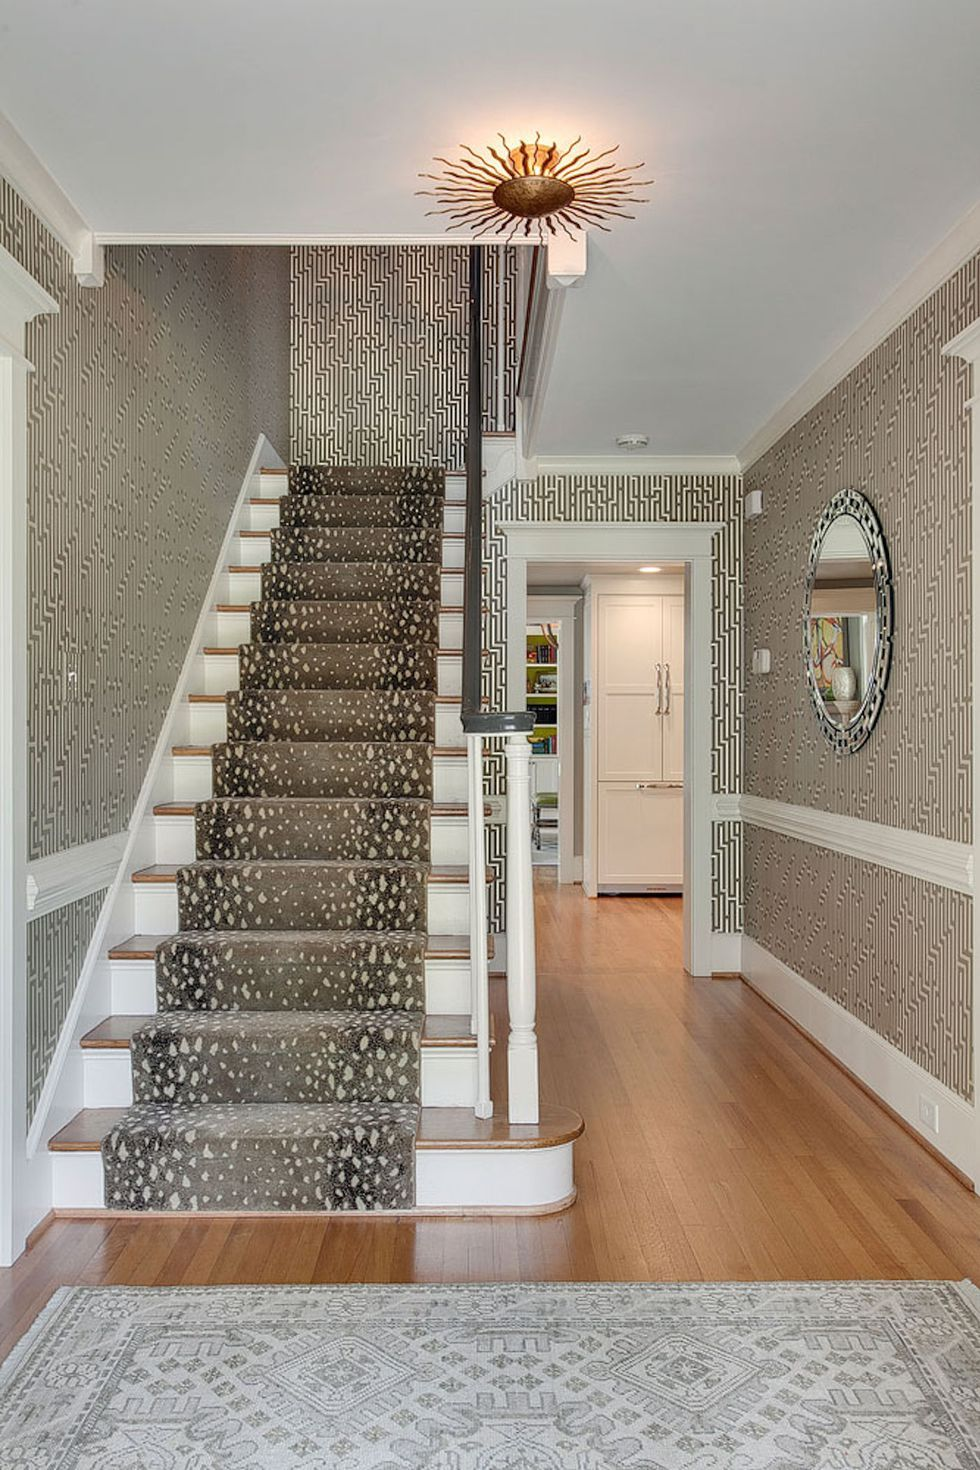 27 Stylish Staircase Decorating Ideas   Staircase wall ... on Creative Staircase Wall Decorating Ideas  id=65112